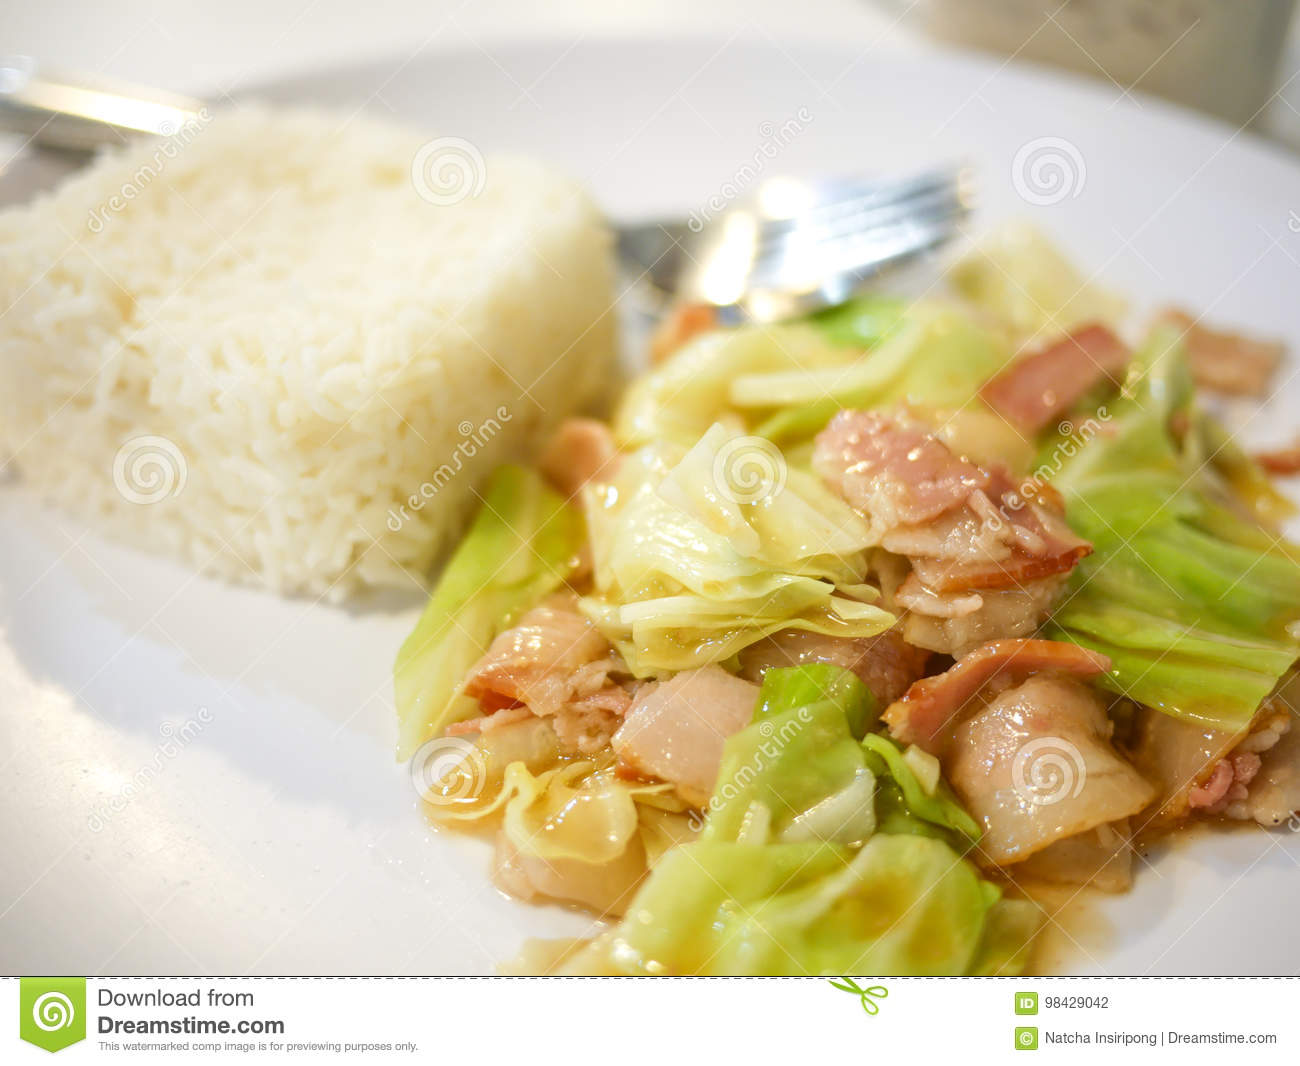 Close up stir fired cabbage and bacon with jasmine rice on white plate